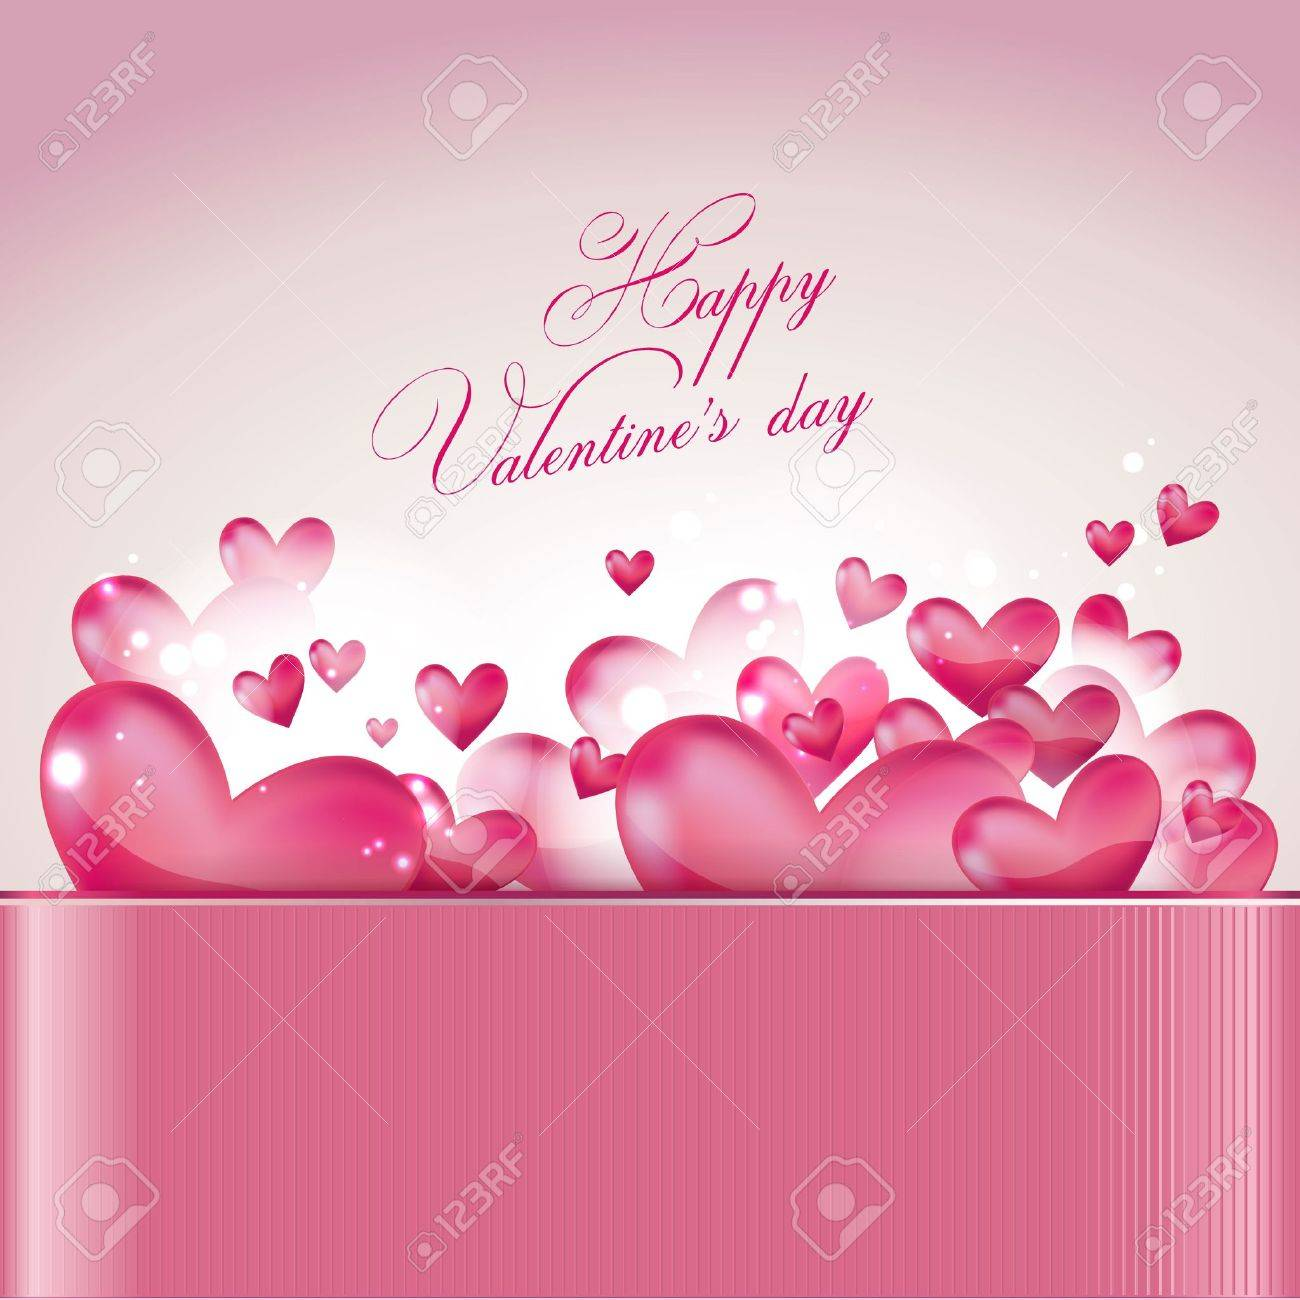 Valentine's day greeting card Stock Vector - 11997835